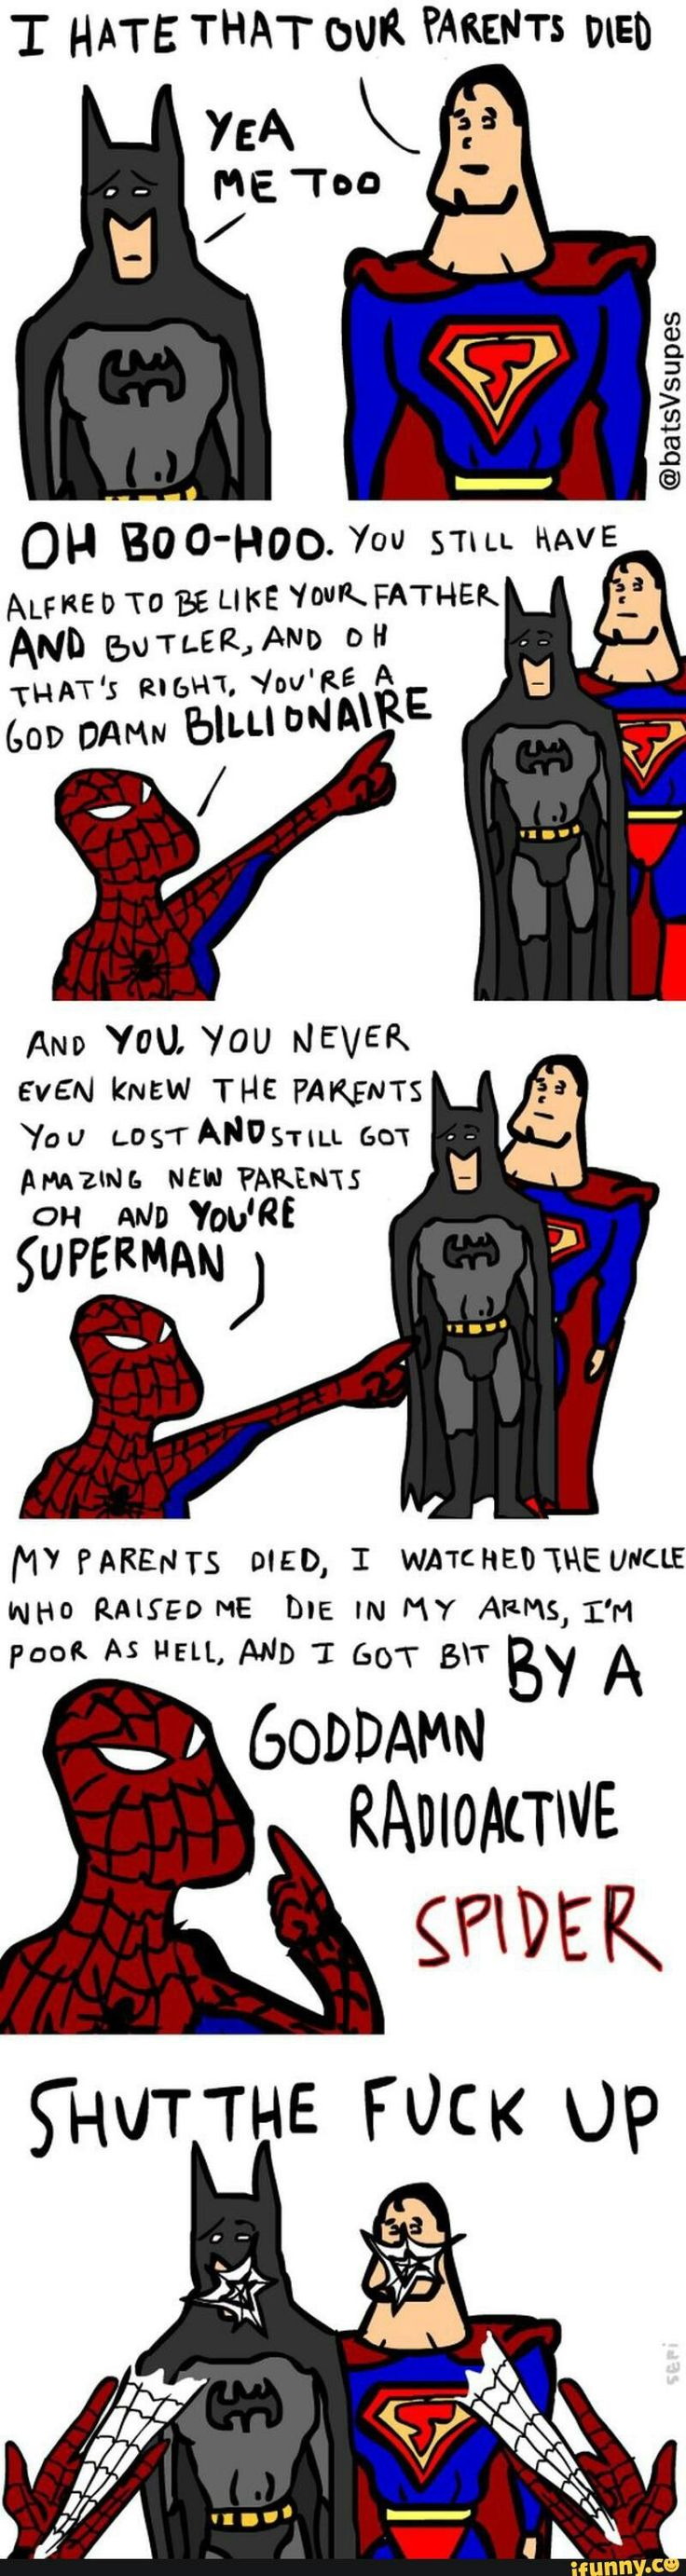 This Explains My Argument Over How More Emotionally Damaged Spiderman